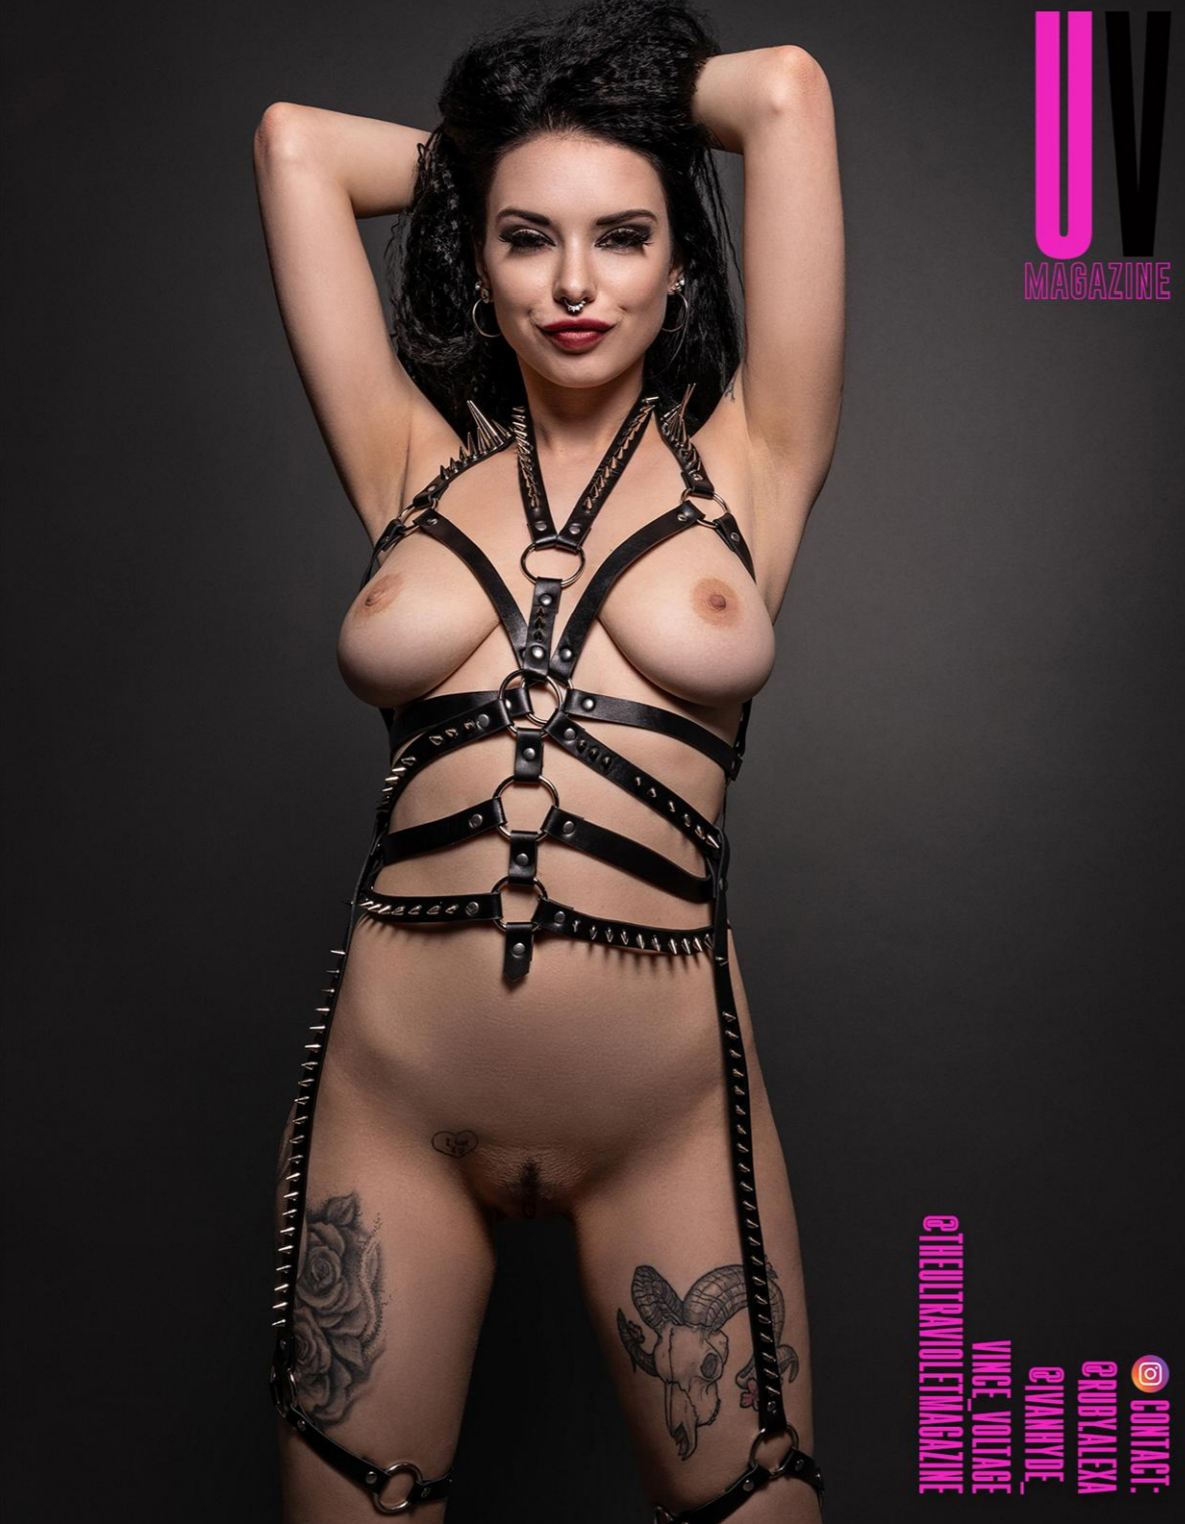 Ultraviolet magazine July 2020